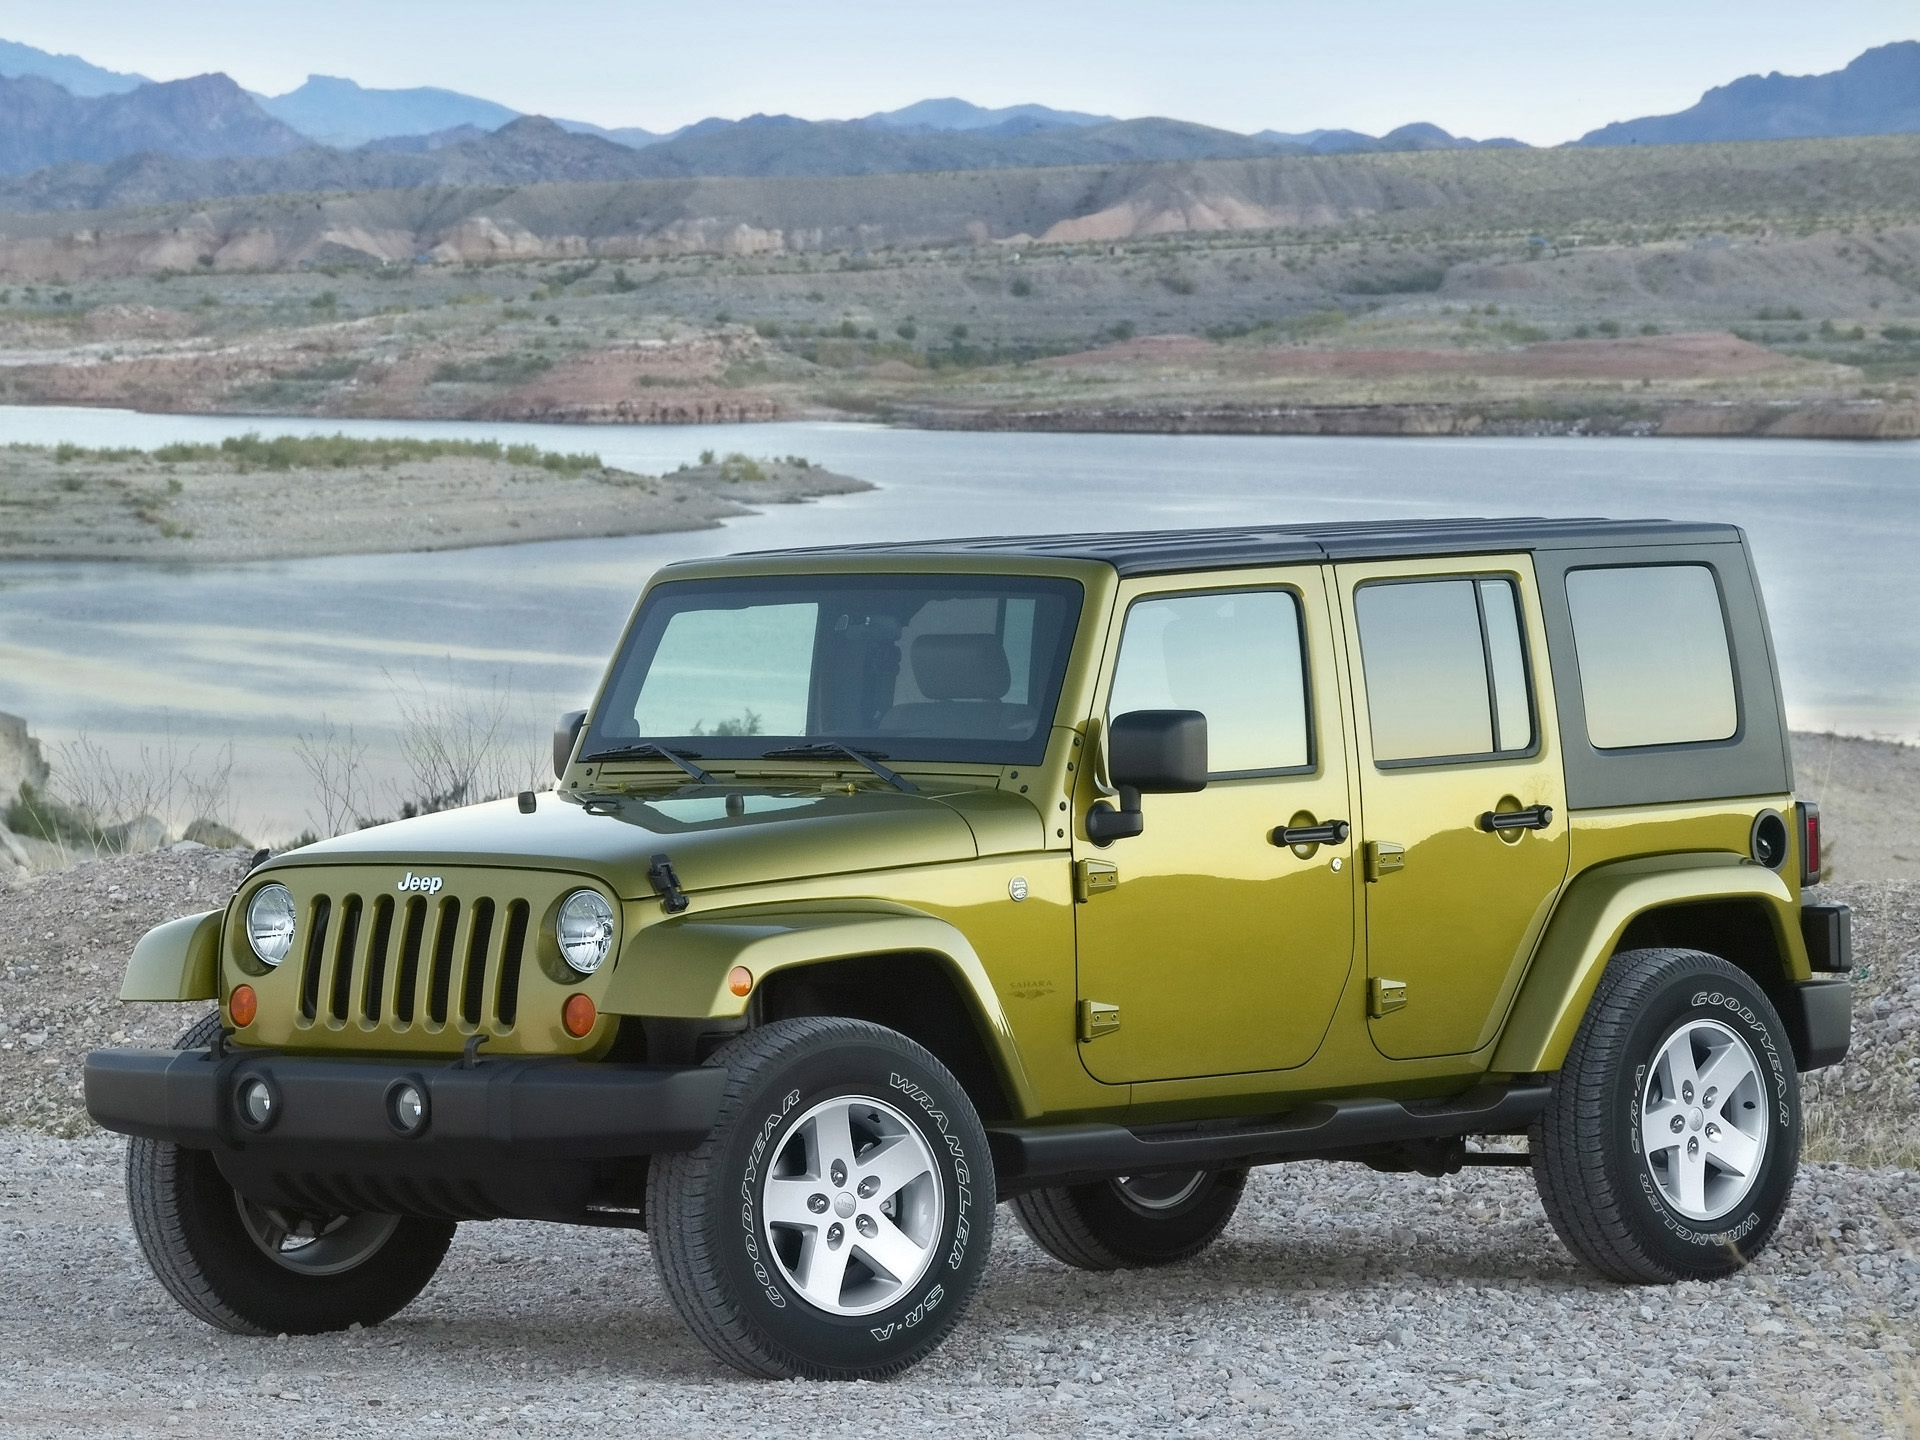 Jeep Wrangler Unlimited photo 33572